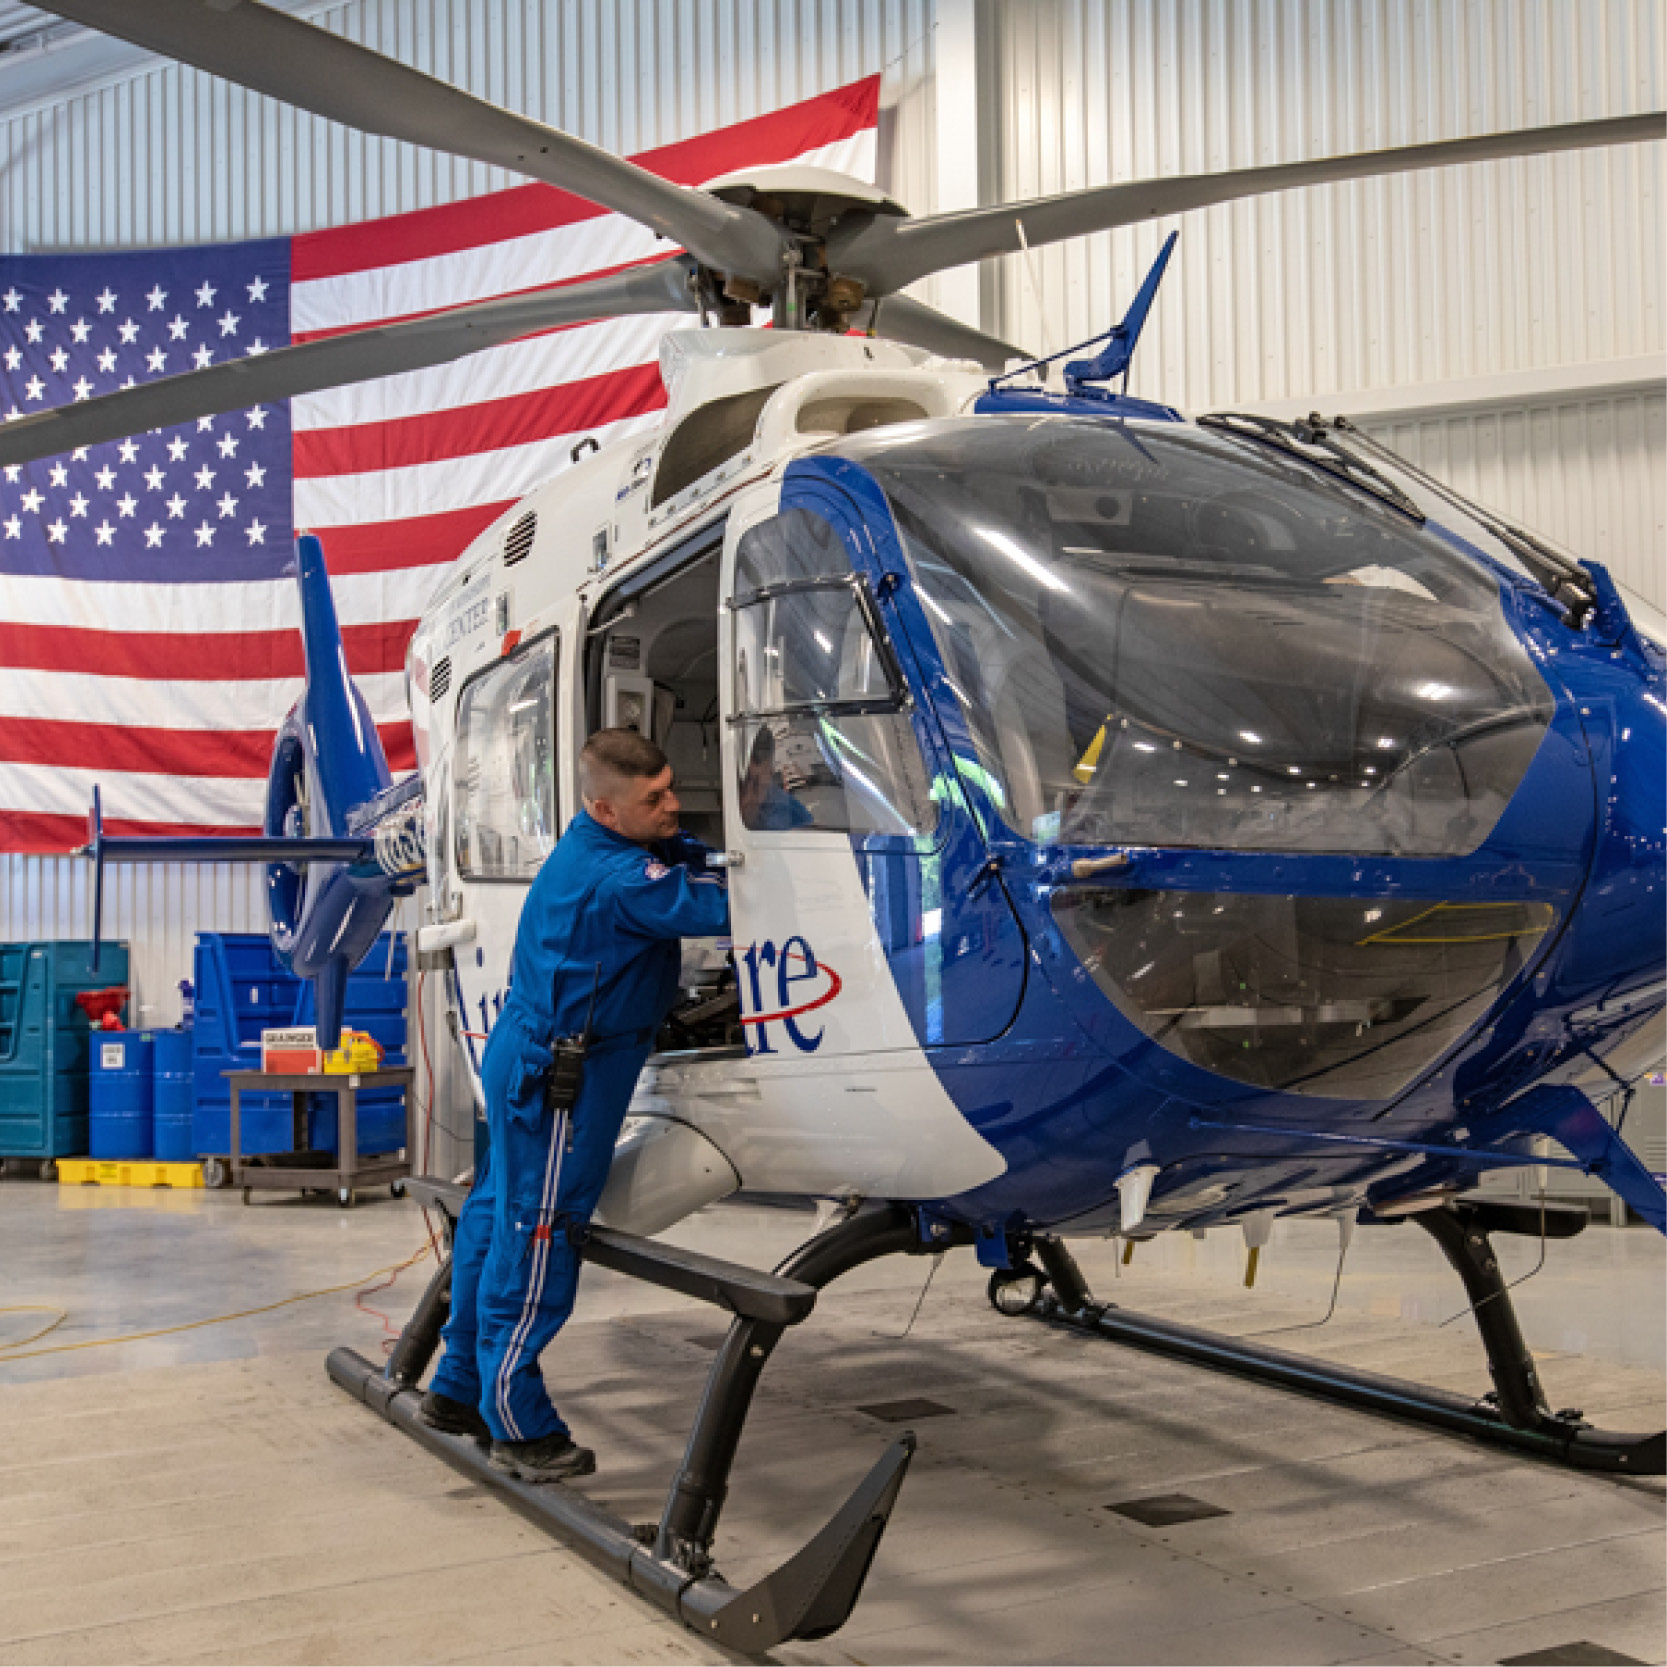 Helicopter with American flag in background